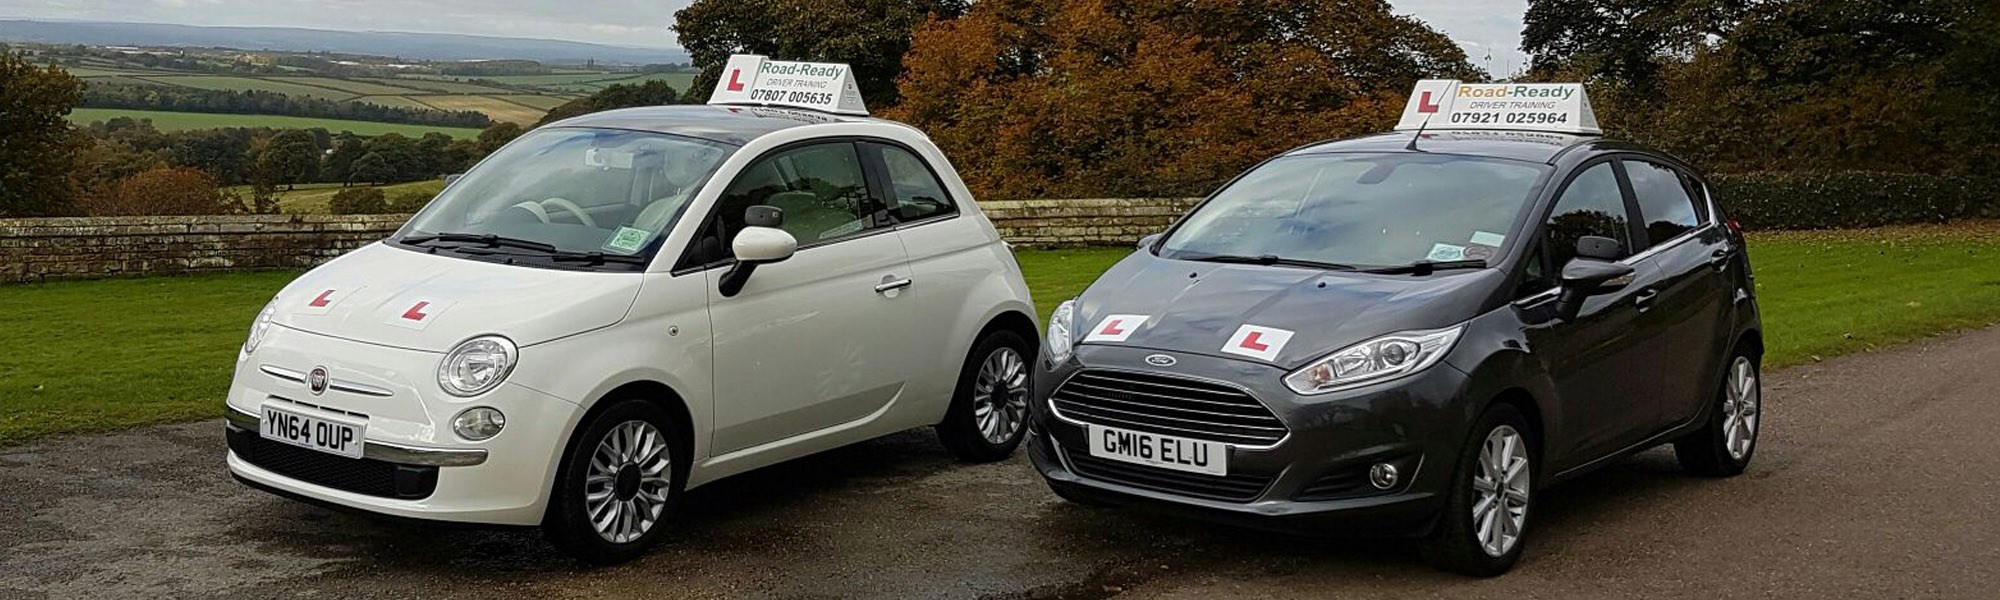 Driving Instructors Nottingham